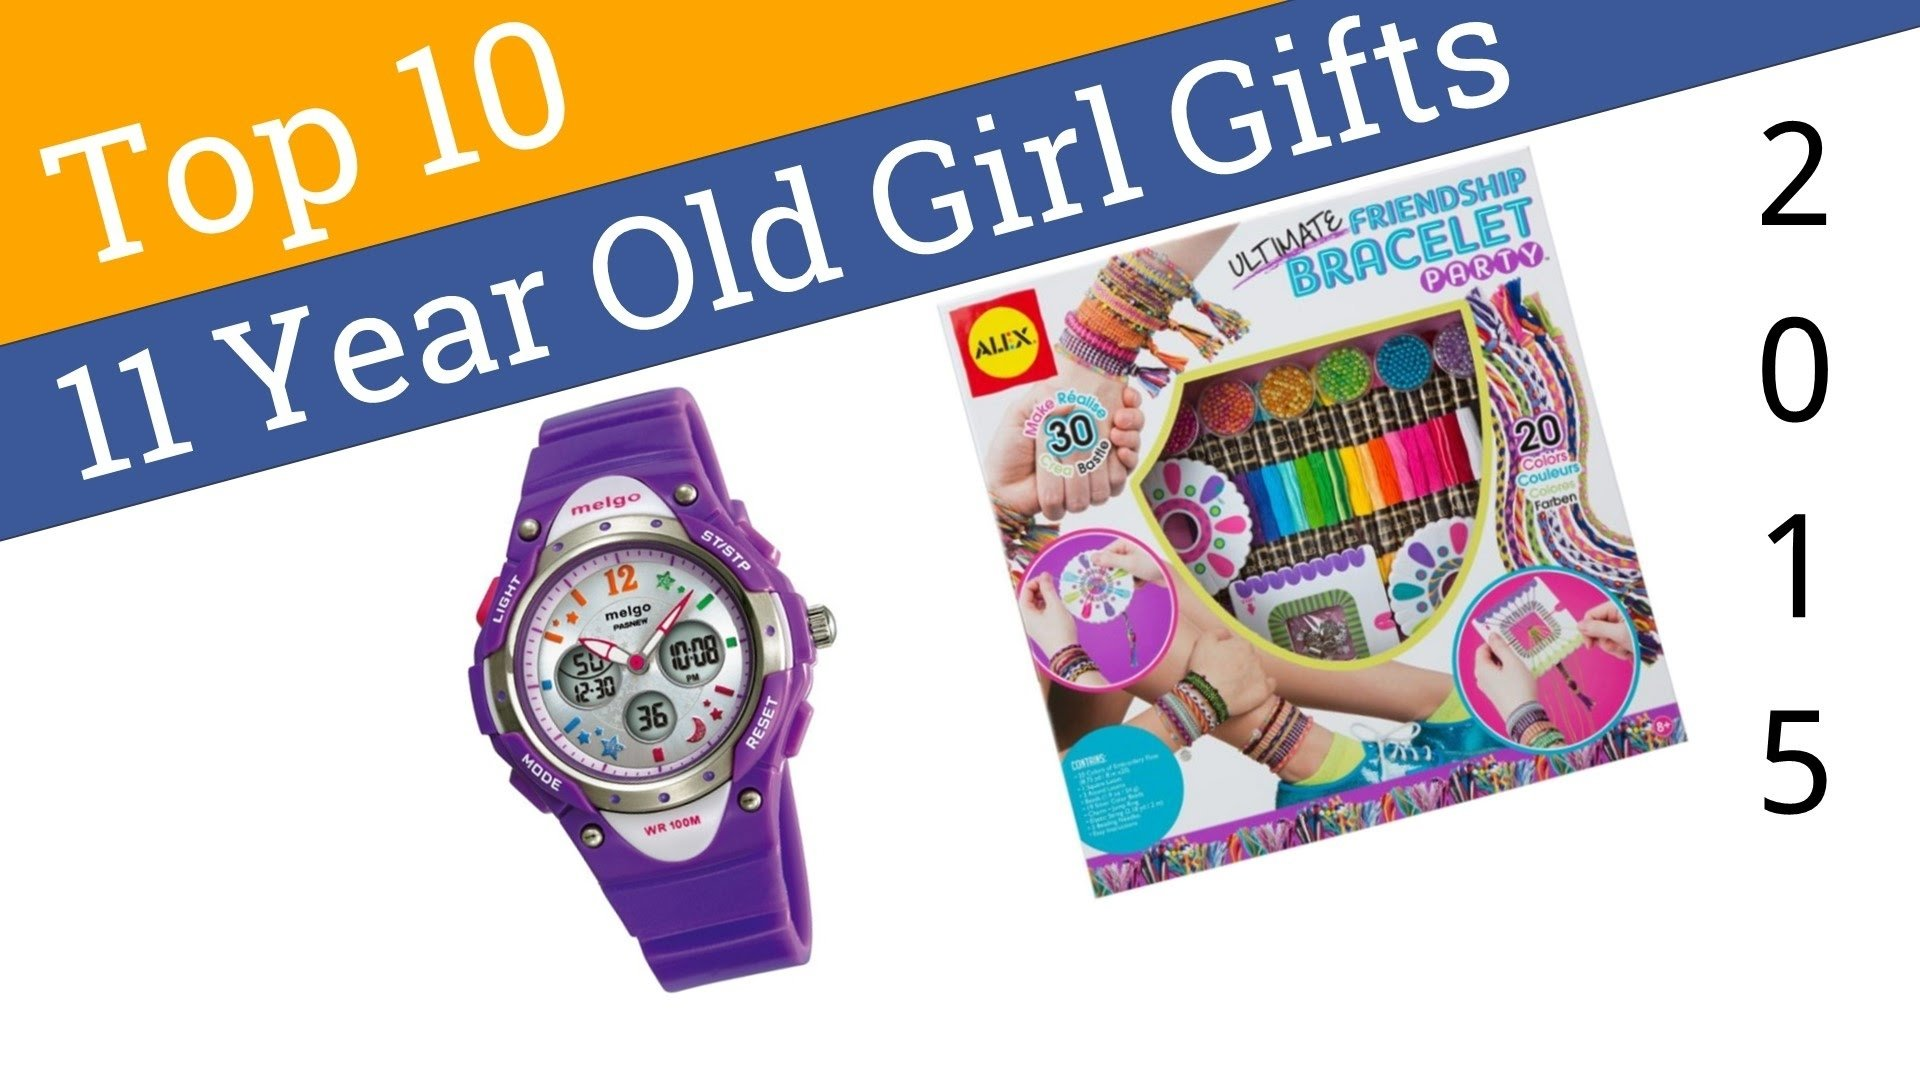 10 Cute Gift Ideas 11 Year Old Girl 10 best 11 year old girl gifts 2015 youtube 1 2021